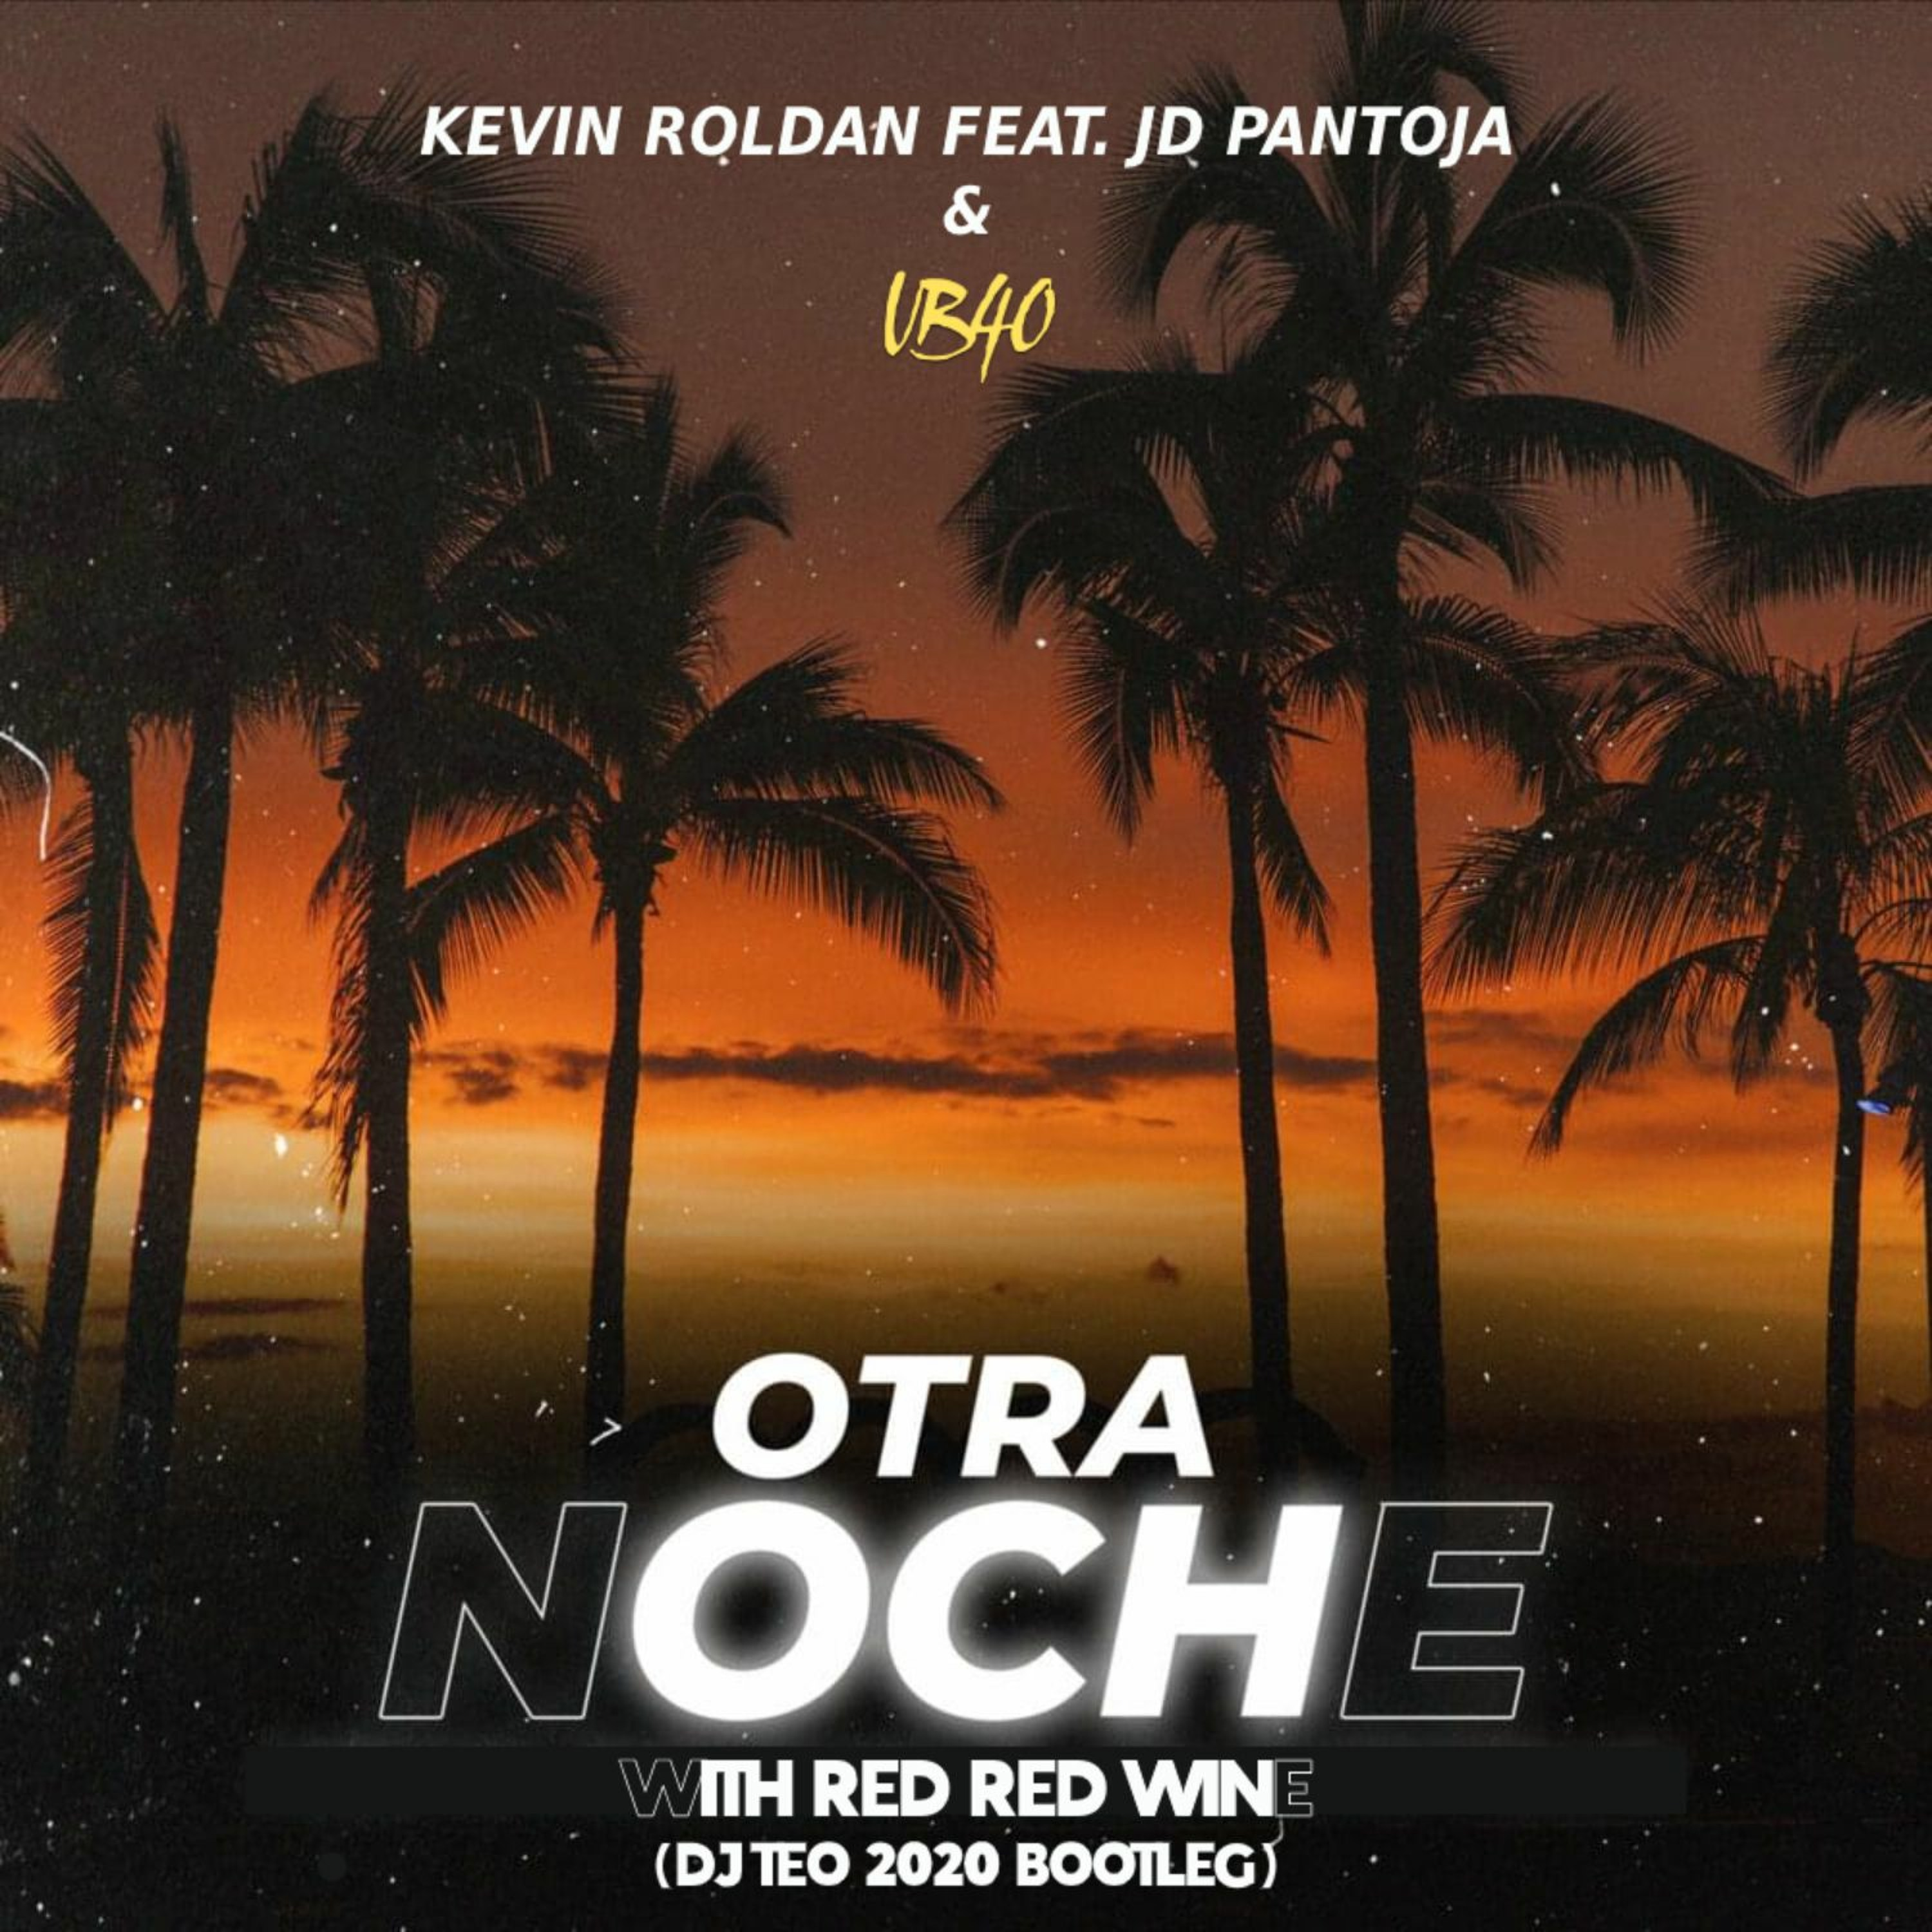 Kevin Roldan Feat. Jd Pantoja & UB40 - Otra Noche With Red Red Wine (Dj Teo 2020 Bootleg) (Filtered)